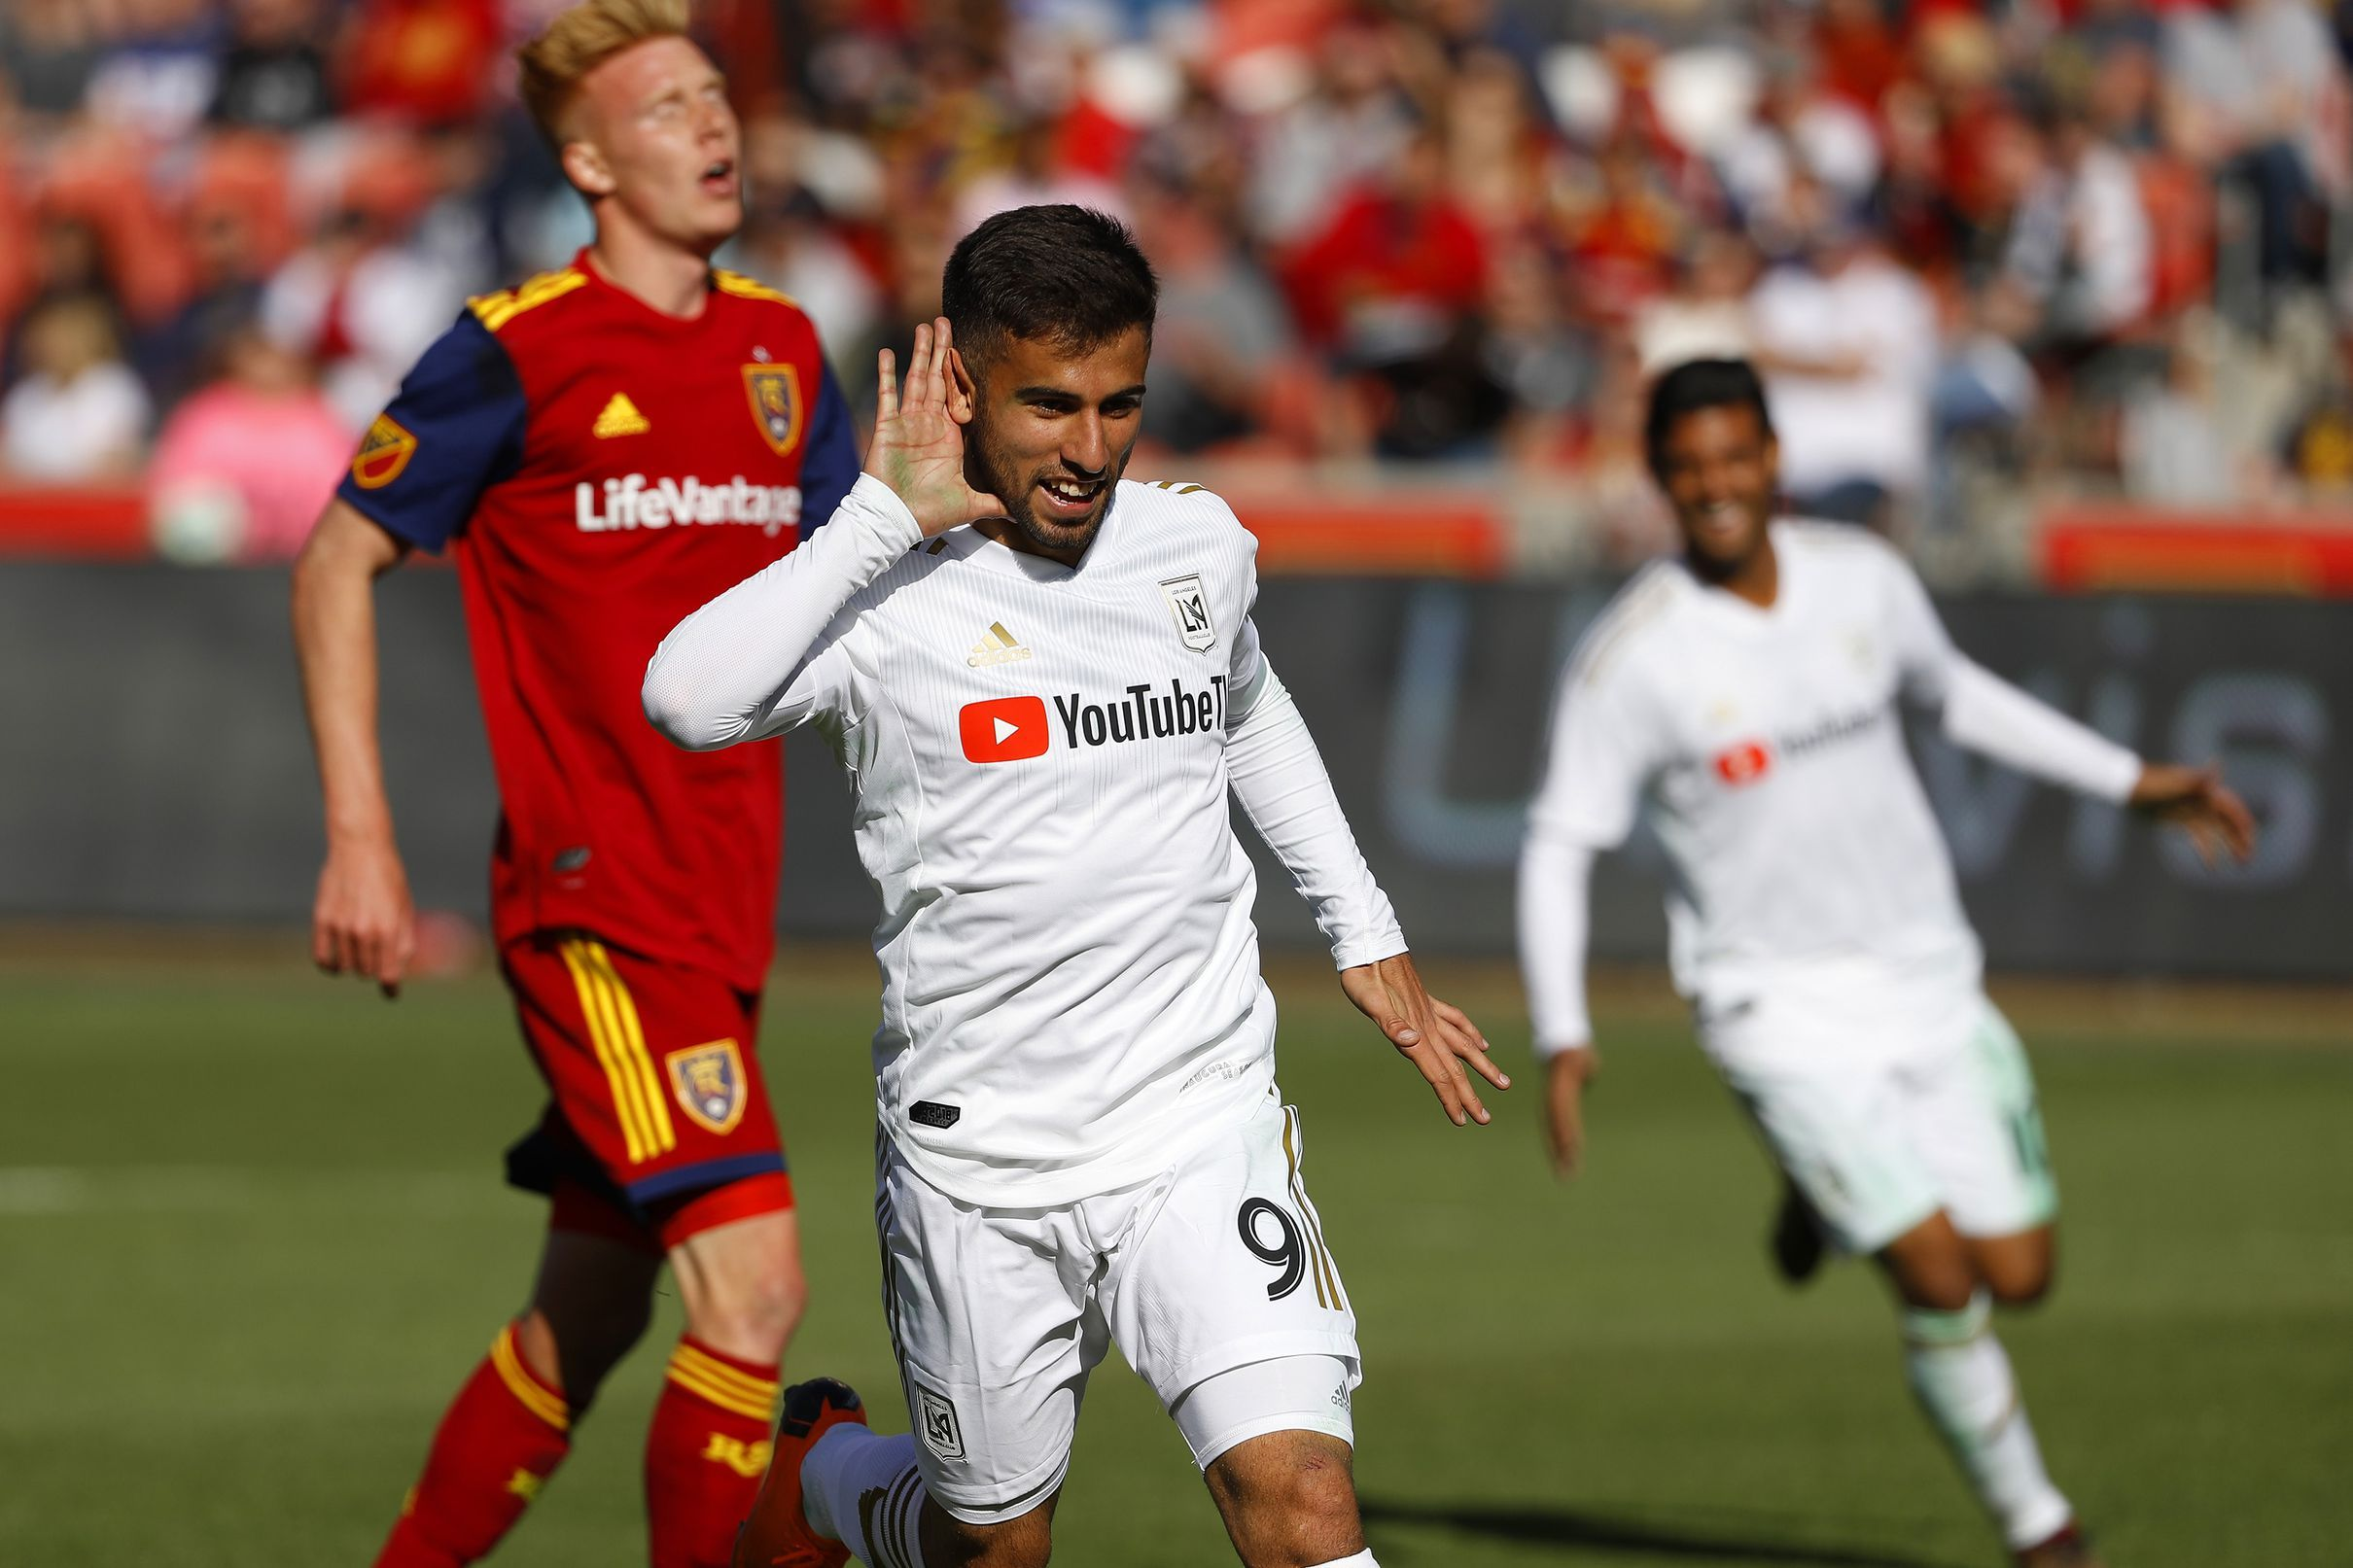 Lafc Forward Diego Rossi Voted Mls Player Of The Week Angels On Parade Los Angeles Football Club Professional Soccer Major League Soccer